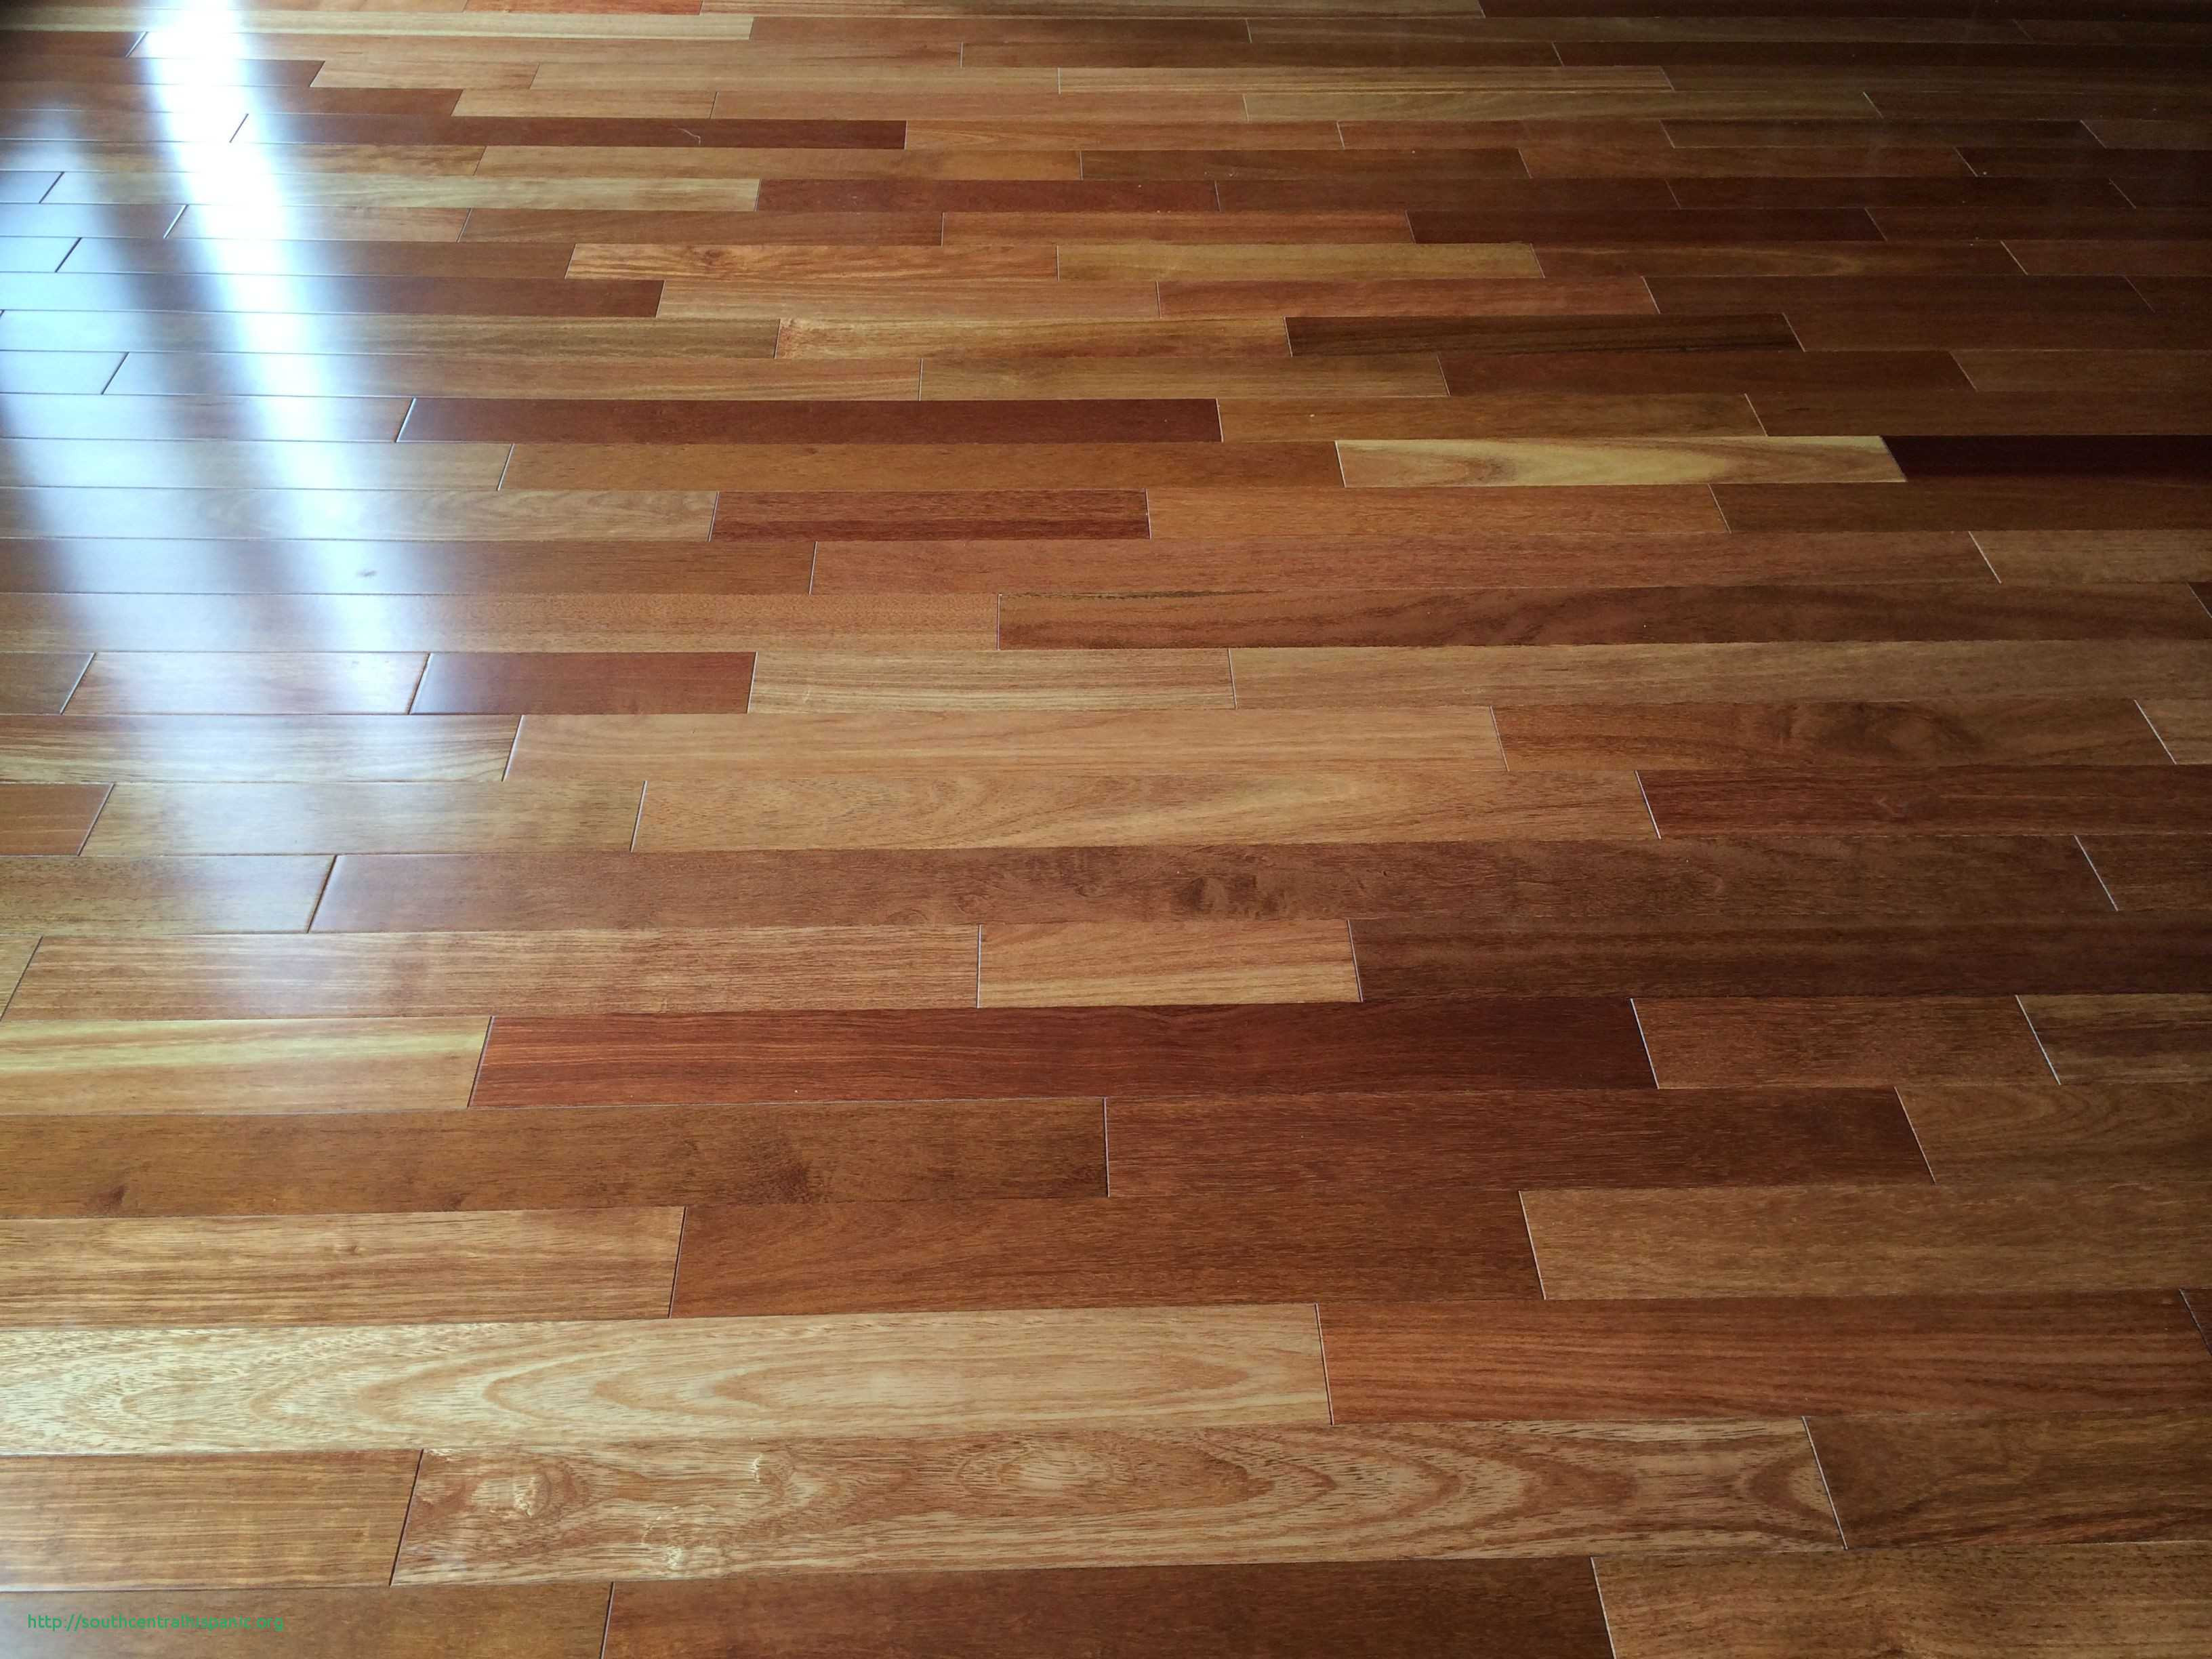 bruce prefinished hardwood flooring home depot of 16 charmant how to level a hardwood floor ideas blog throughout how to level a hardwood floor nouveau natural floors